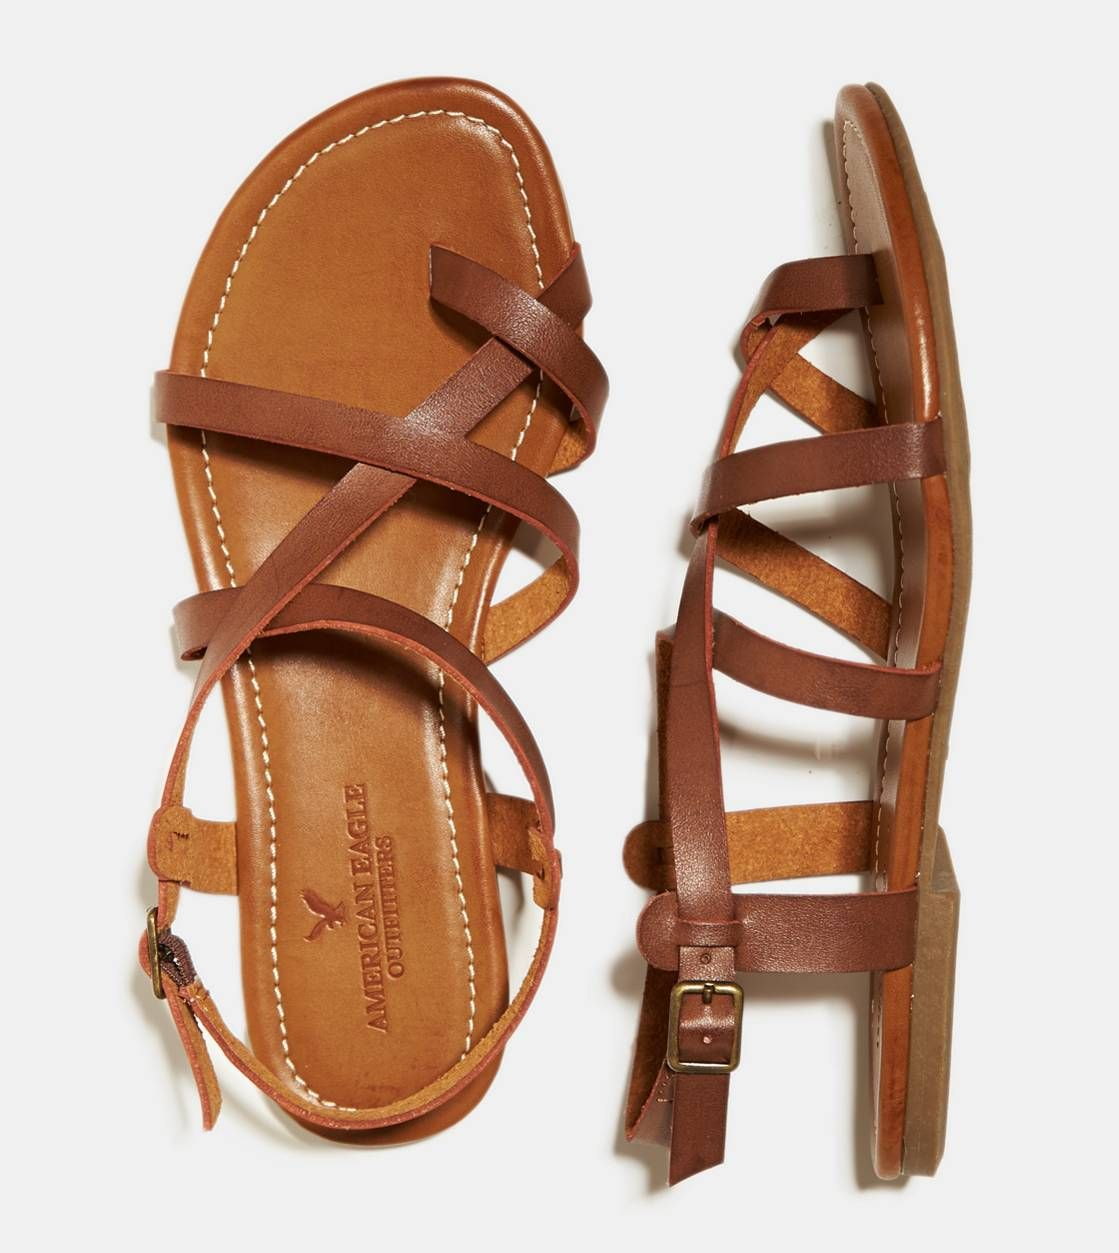 Dark Brown Strappy Criss Cross Sandal, $30 | American Eagle